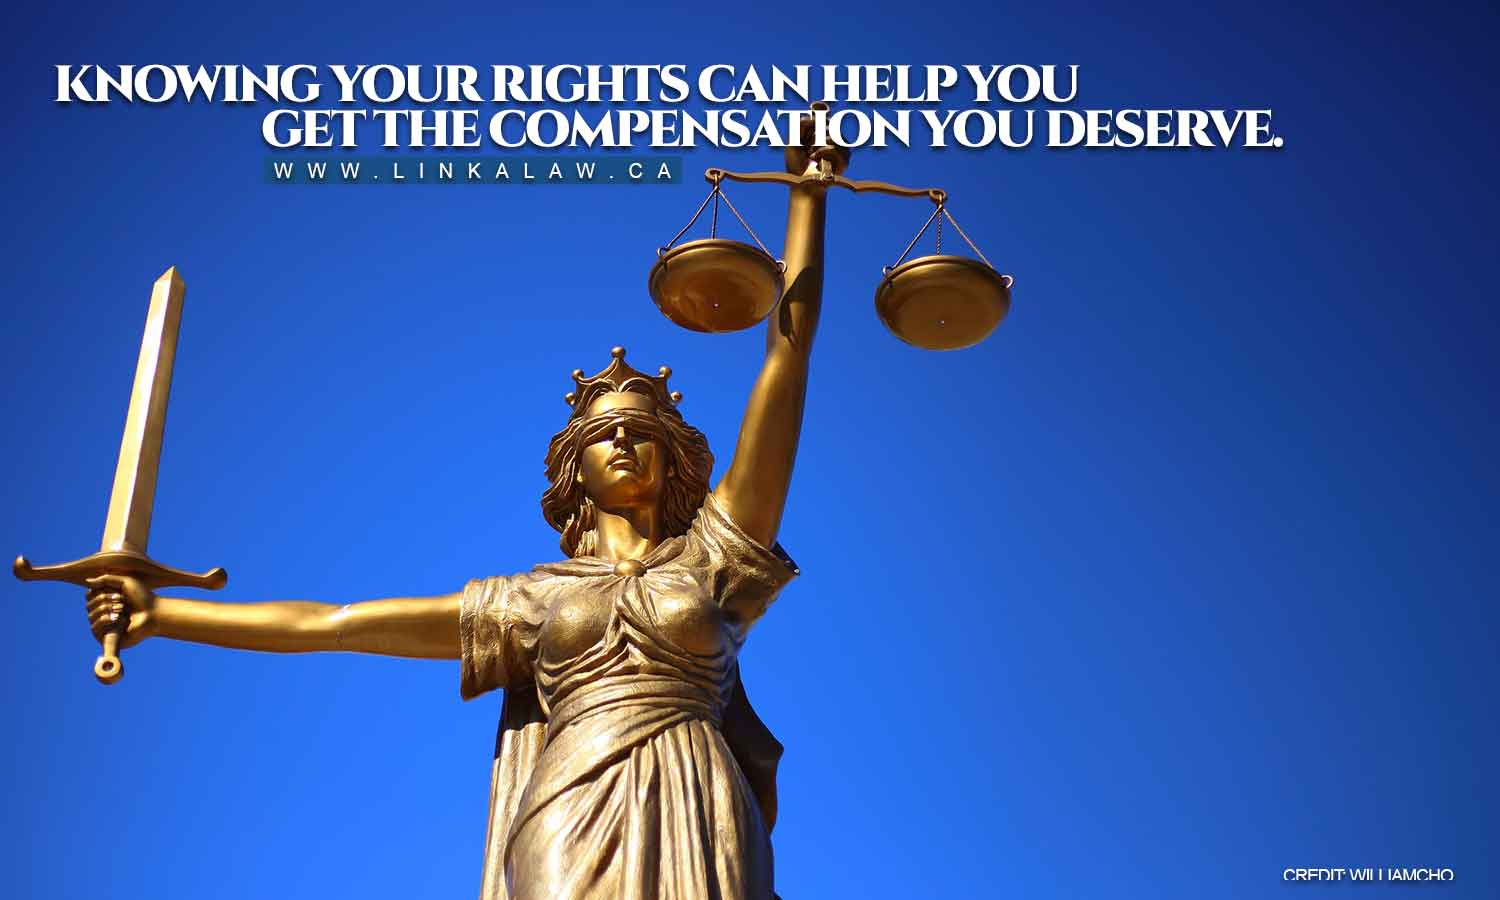 Knowing your rights can help you get the compensation you deserve.